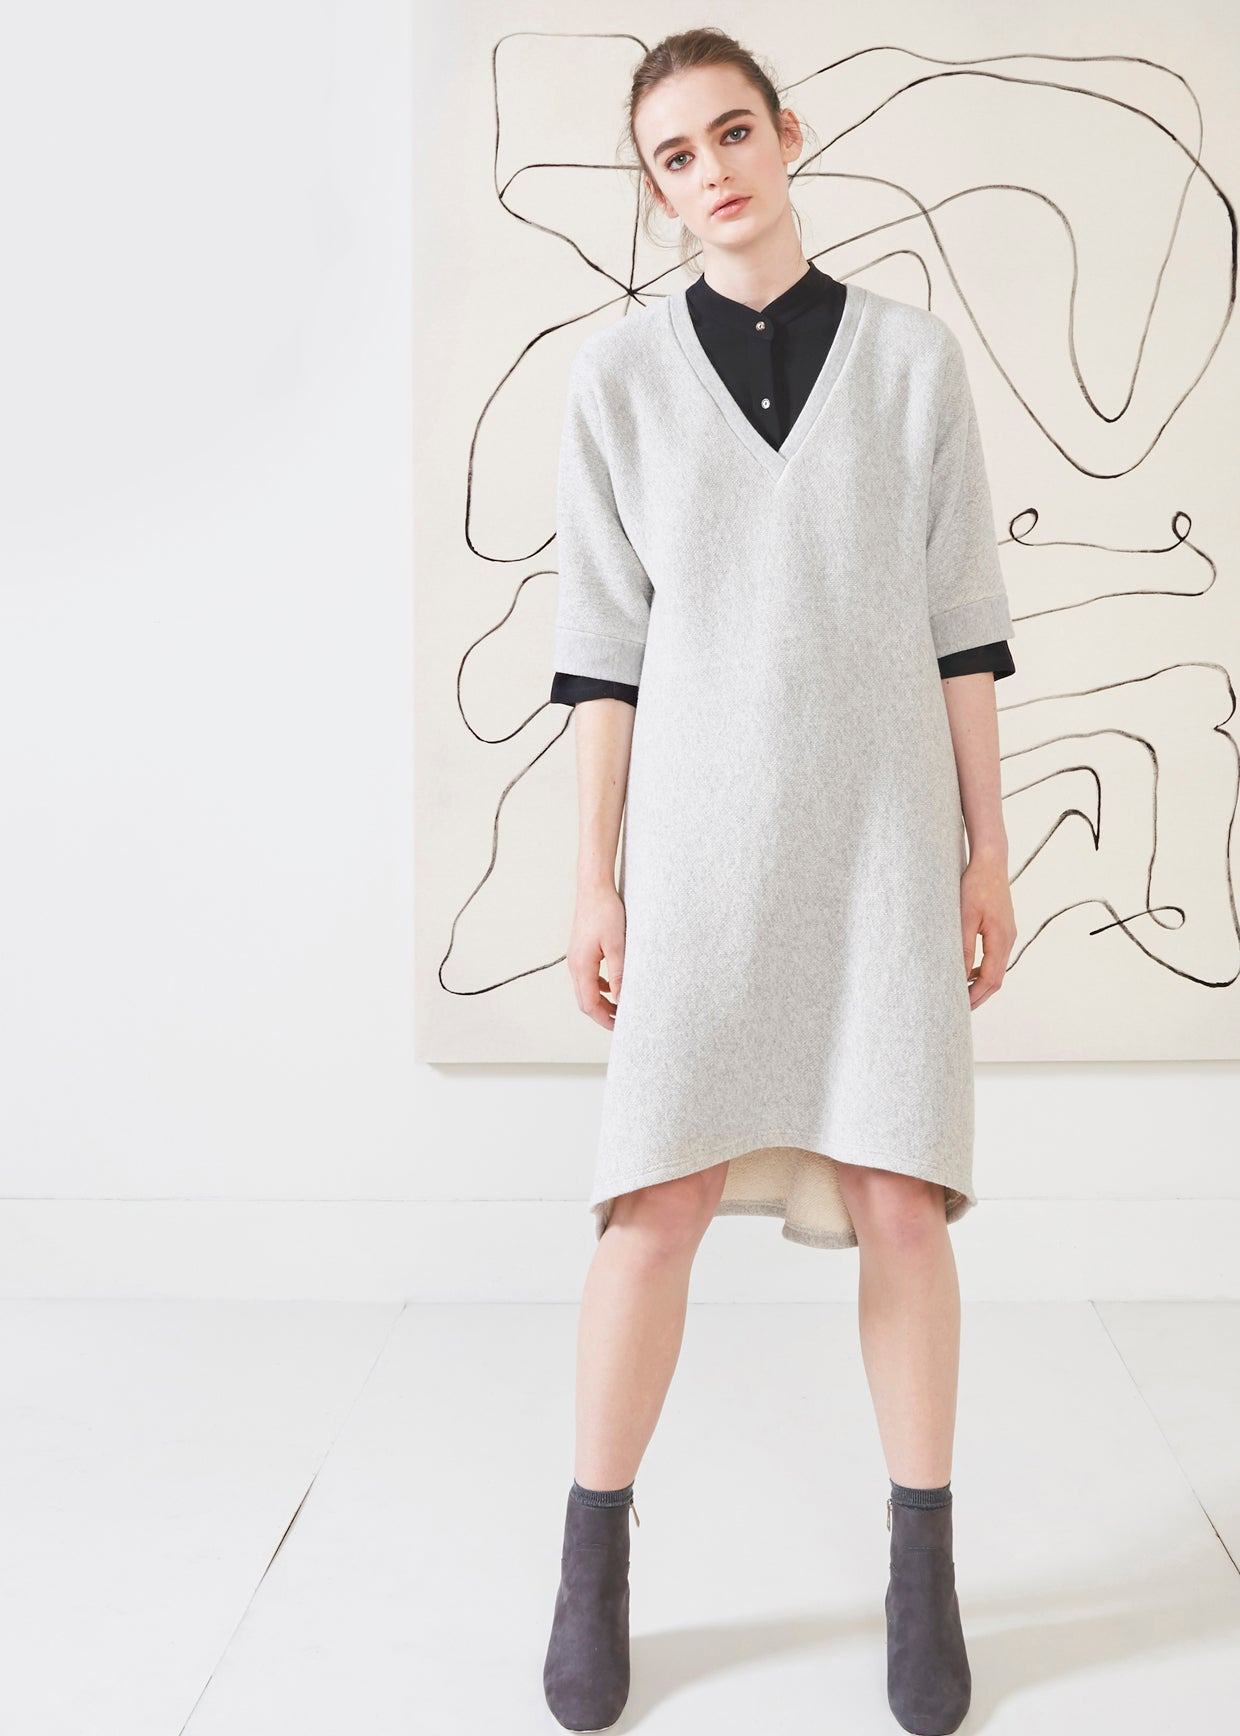 Dagg & Stacey Shai Dress.  Heather grey drop shoulder dress with v-neck.